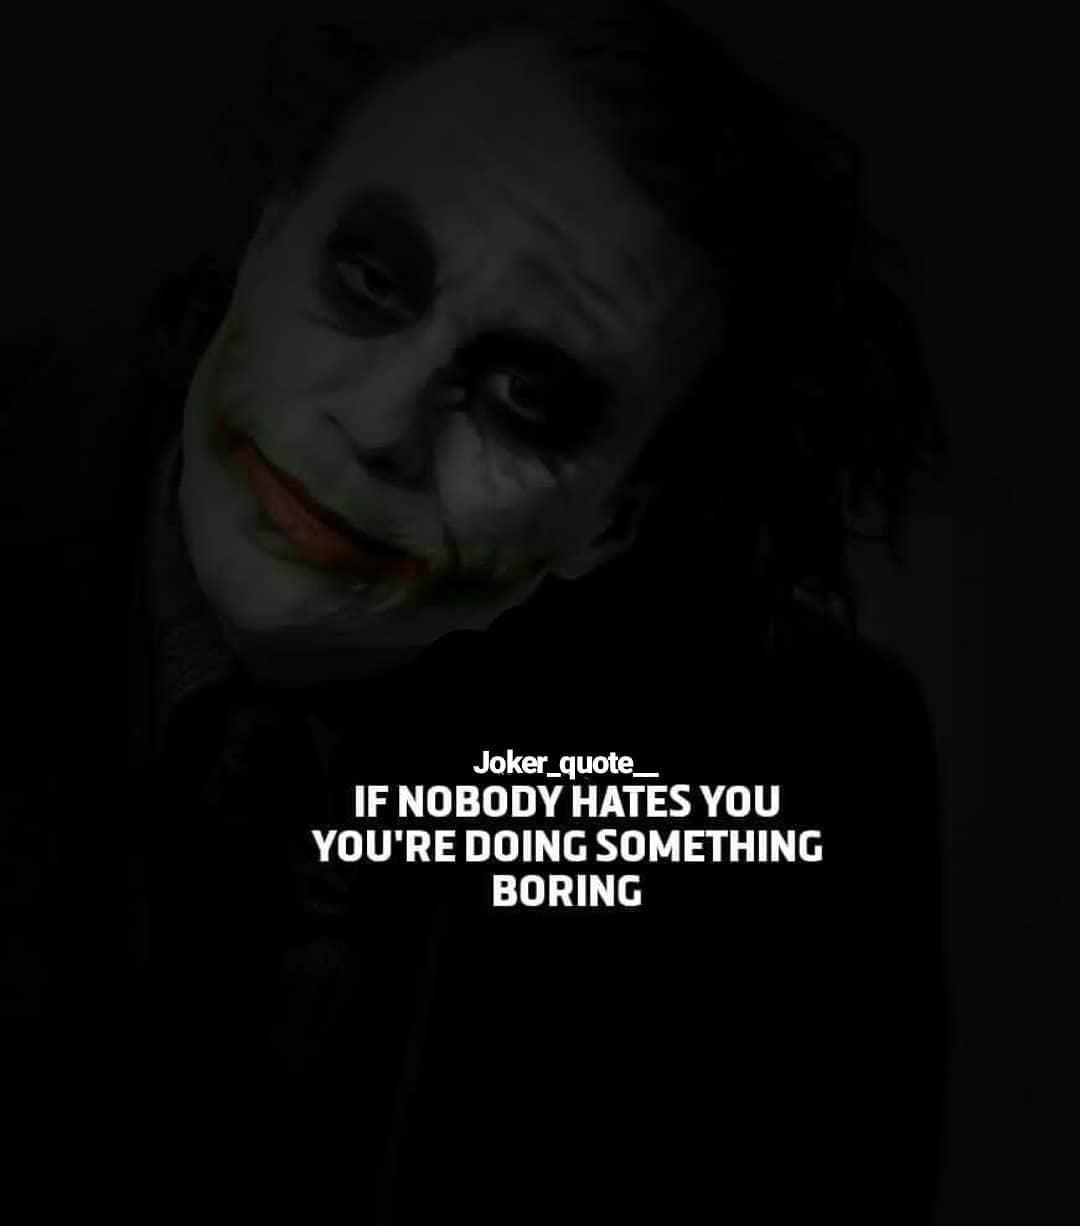 Joker Inspirational Quotes for Android - APK Download